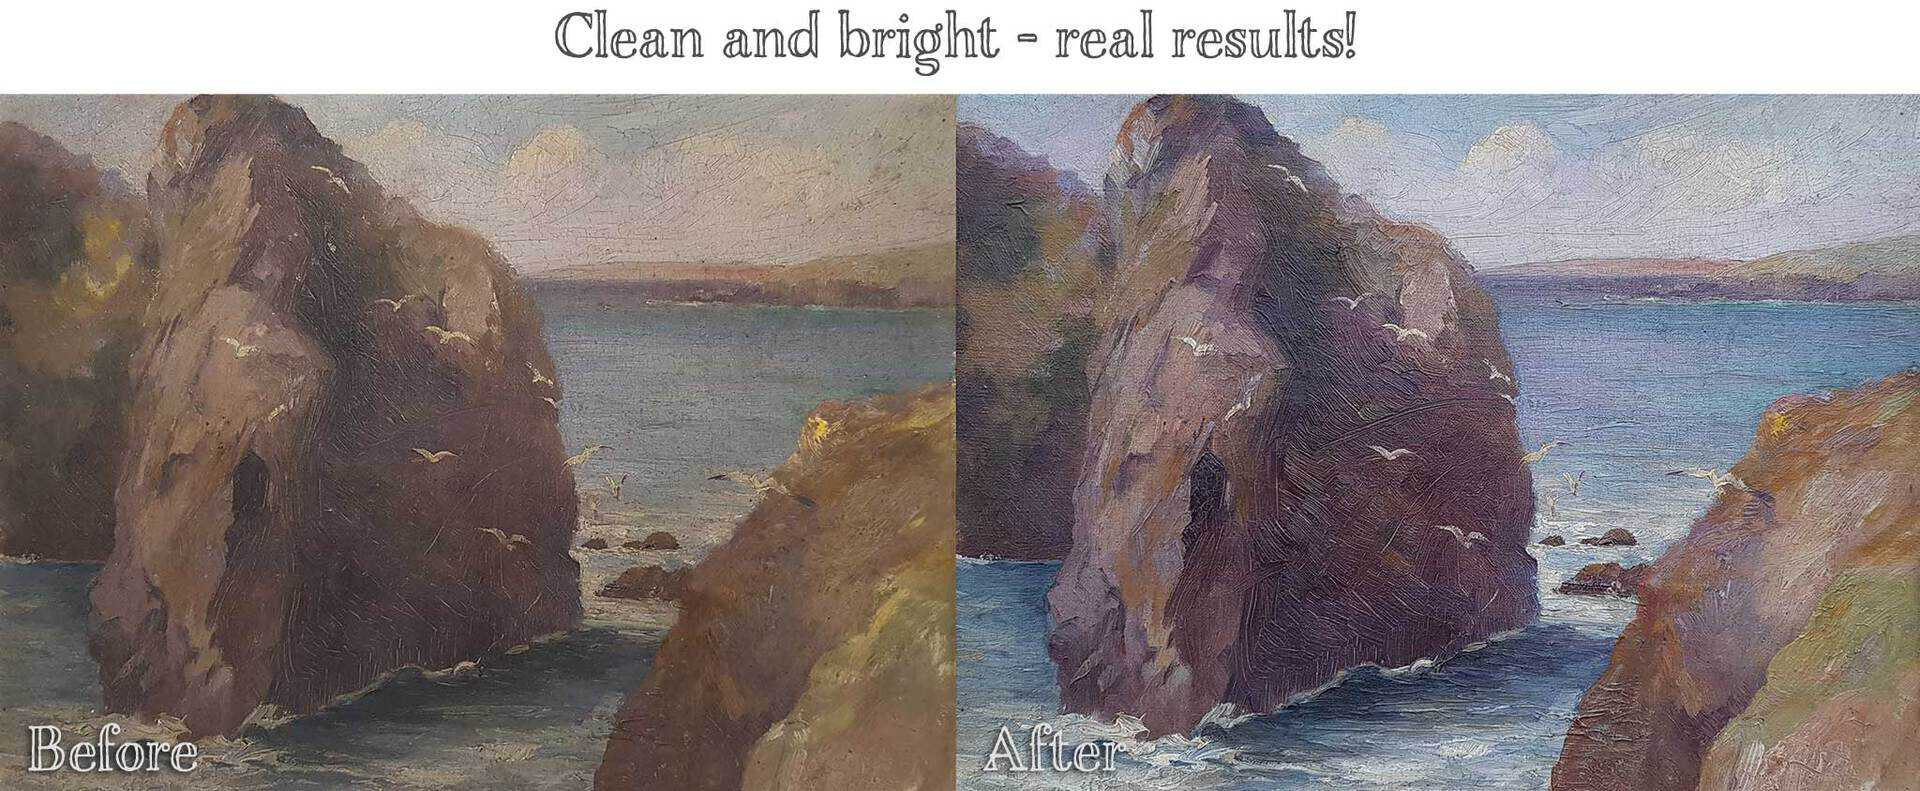 Before and After - Oil Painting Cleaning Results